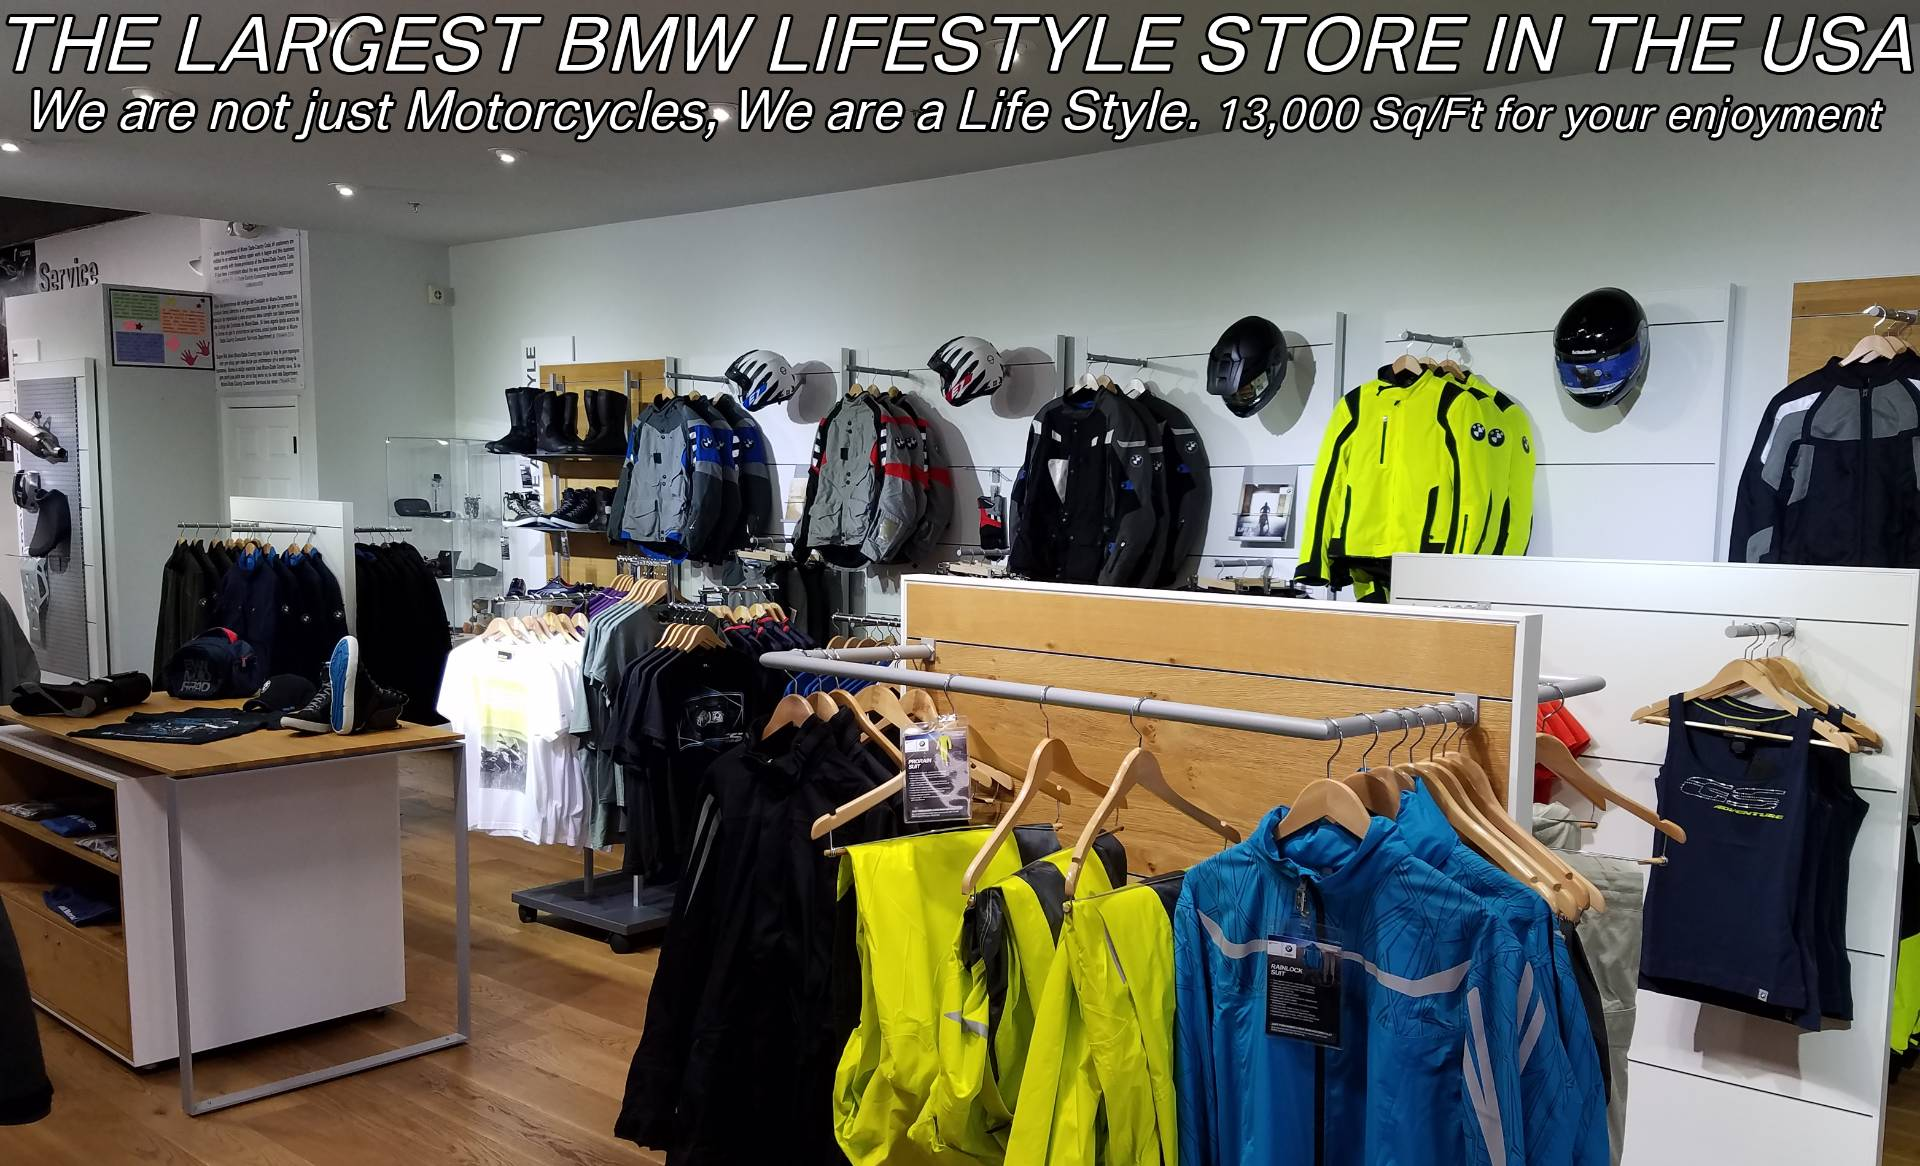 New 2019 BMW R 1250 GSA for sale, BMW for sale R 1250GSA, BMW Motorcycle R1250GSA, new BMW 1250GS Adventure, R1250GSAdventure, BMW Adventure, BMW Motorcycles of Miami, Motorcycles of Miami - Photo 68